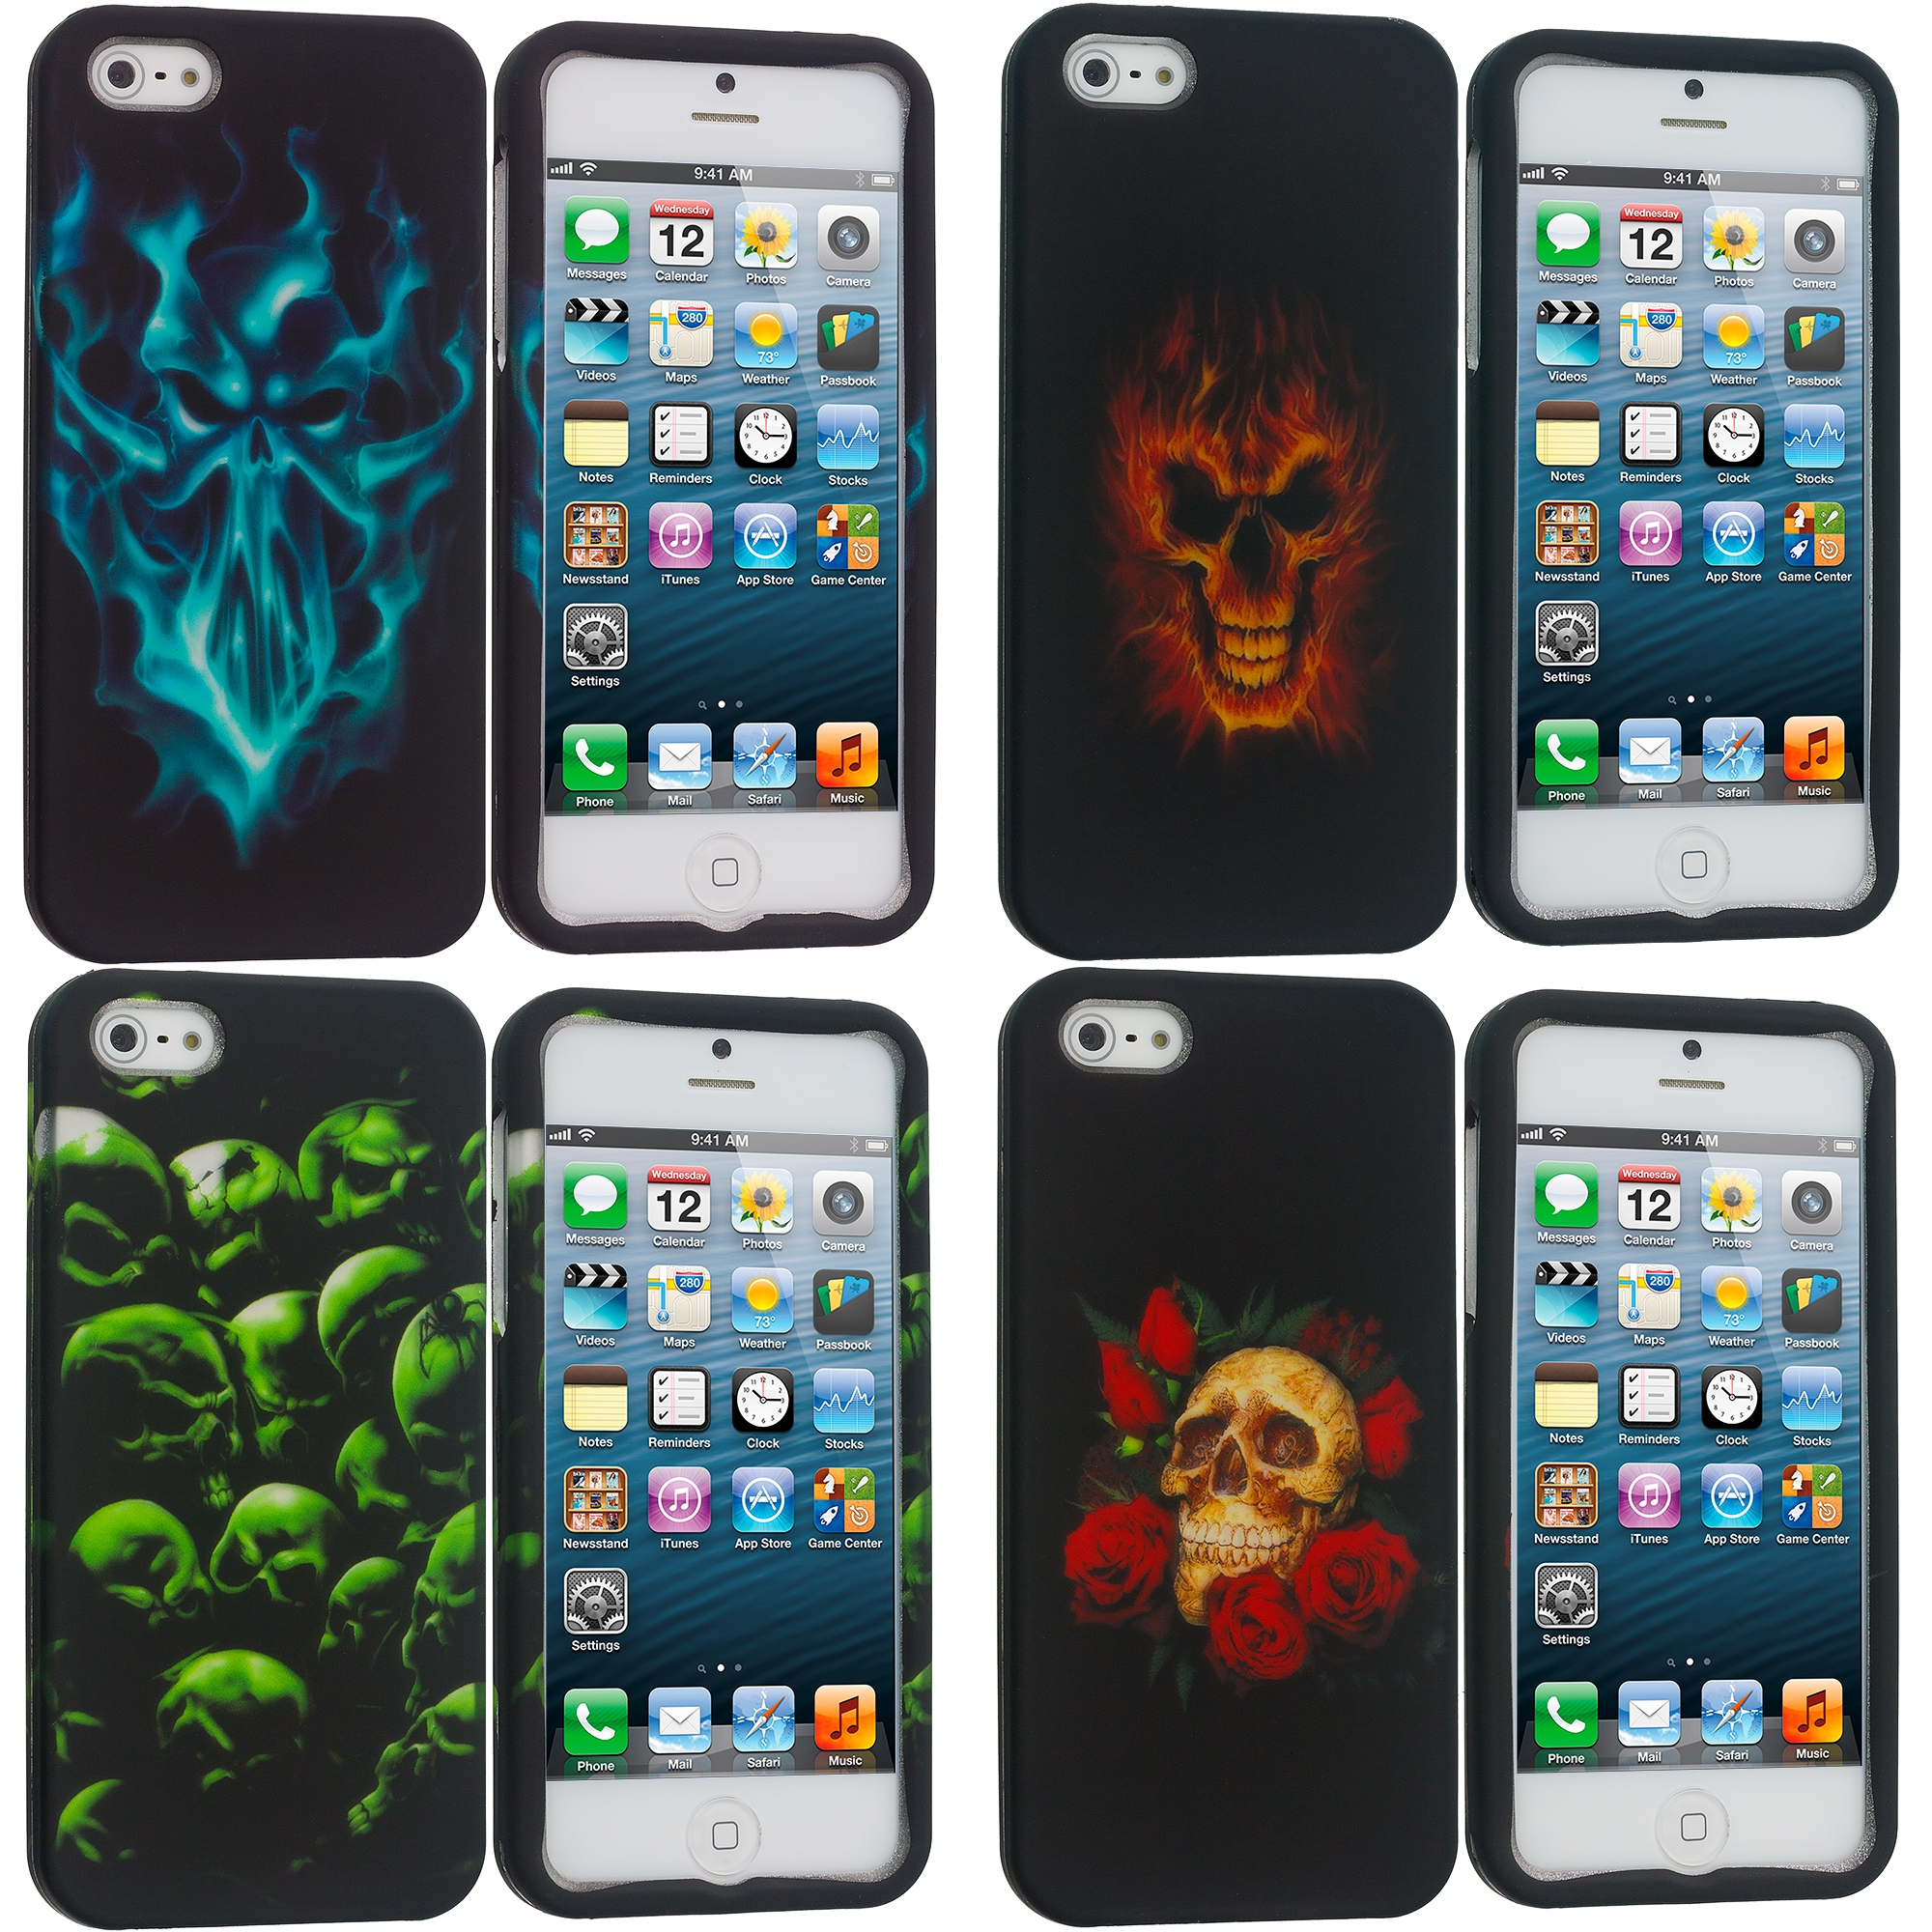 Apple iPhone 5/5S/SE 4 in 1 Combo Bundle Pack - Skulls Hard Rubberized Design Case Cover